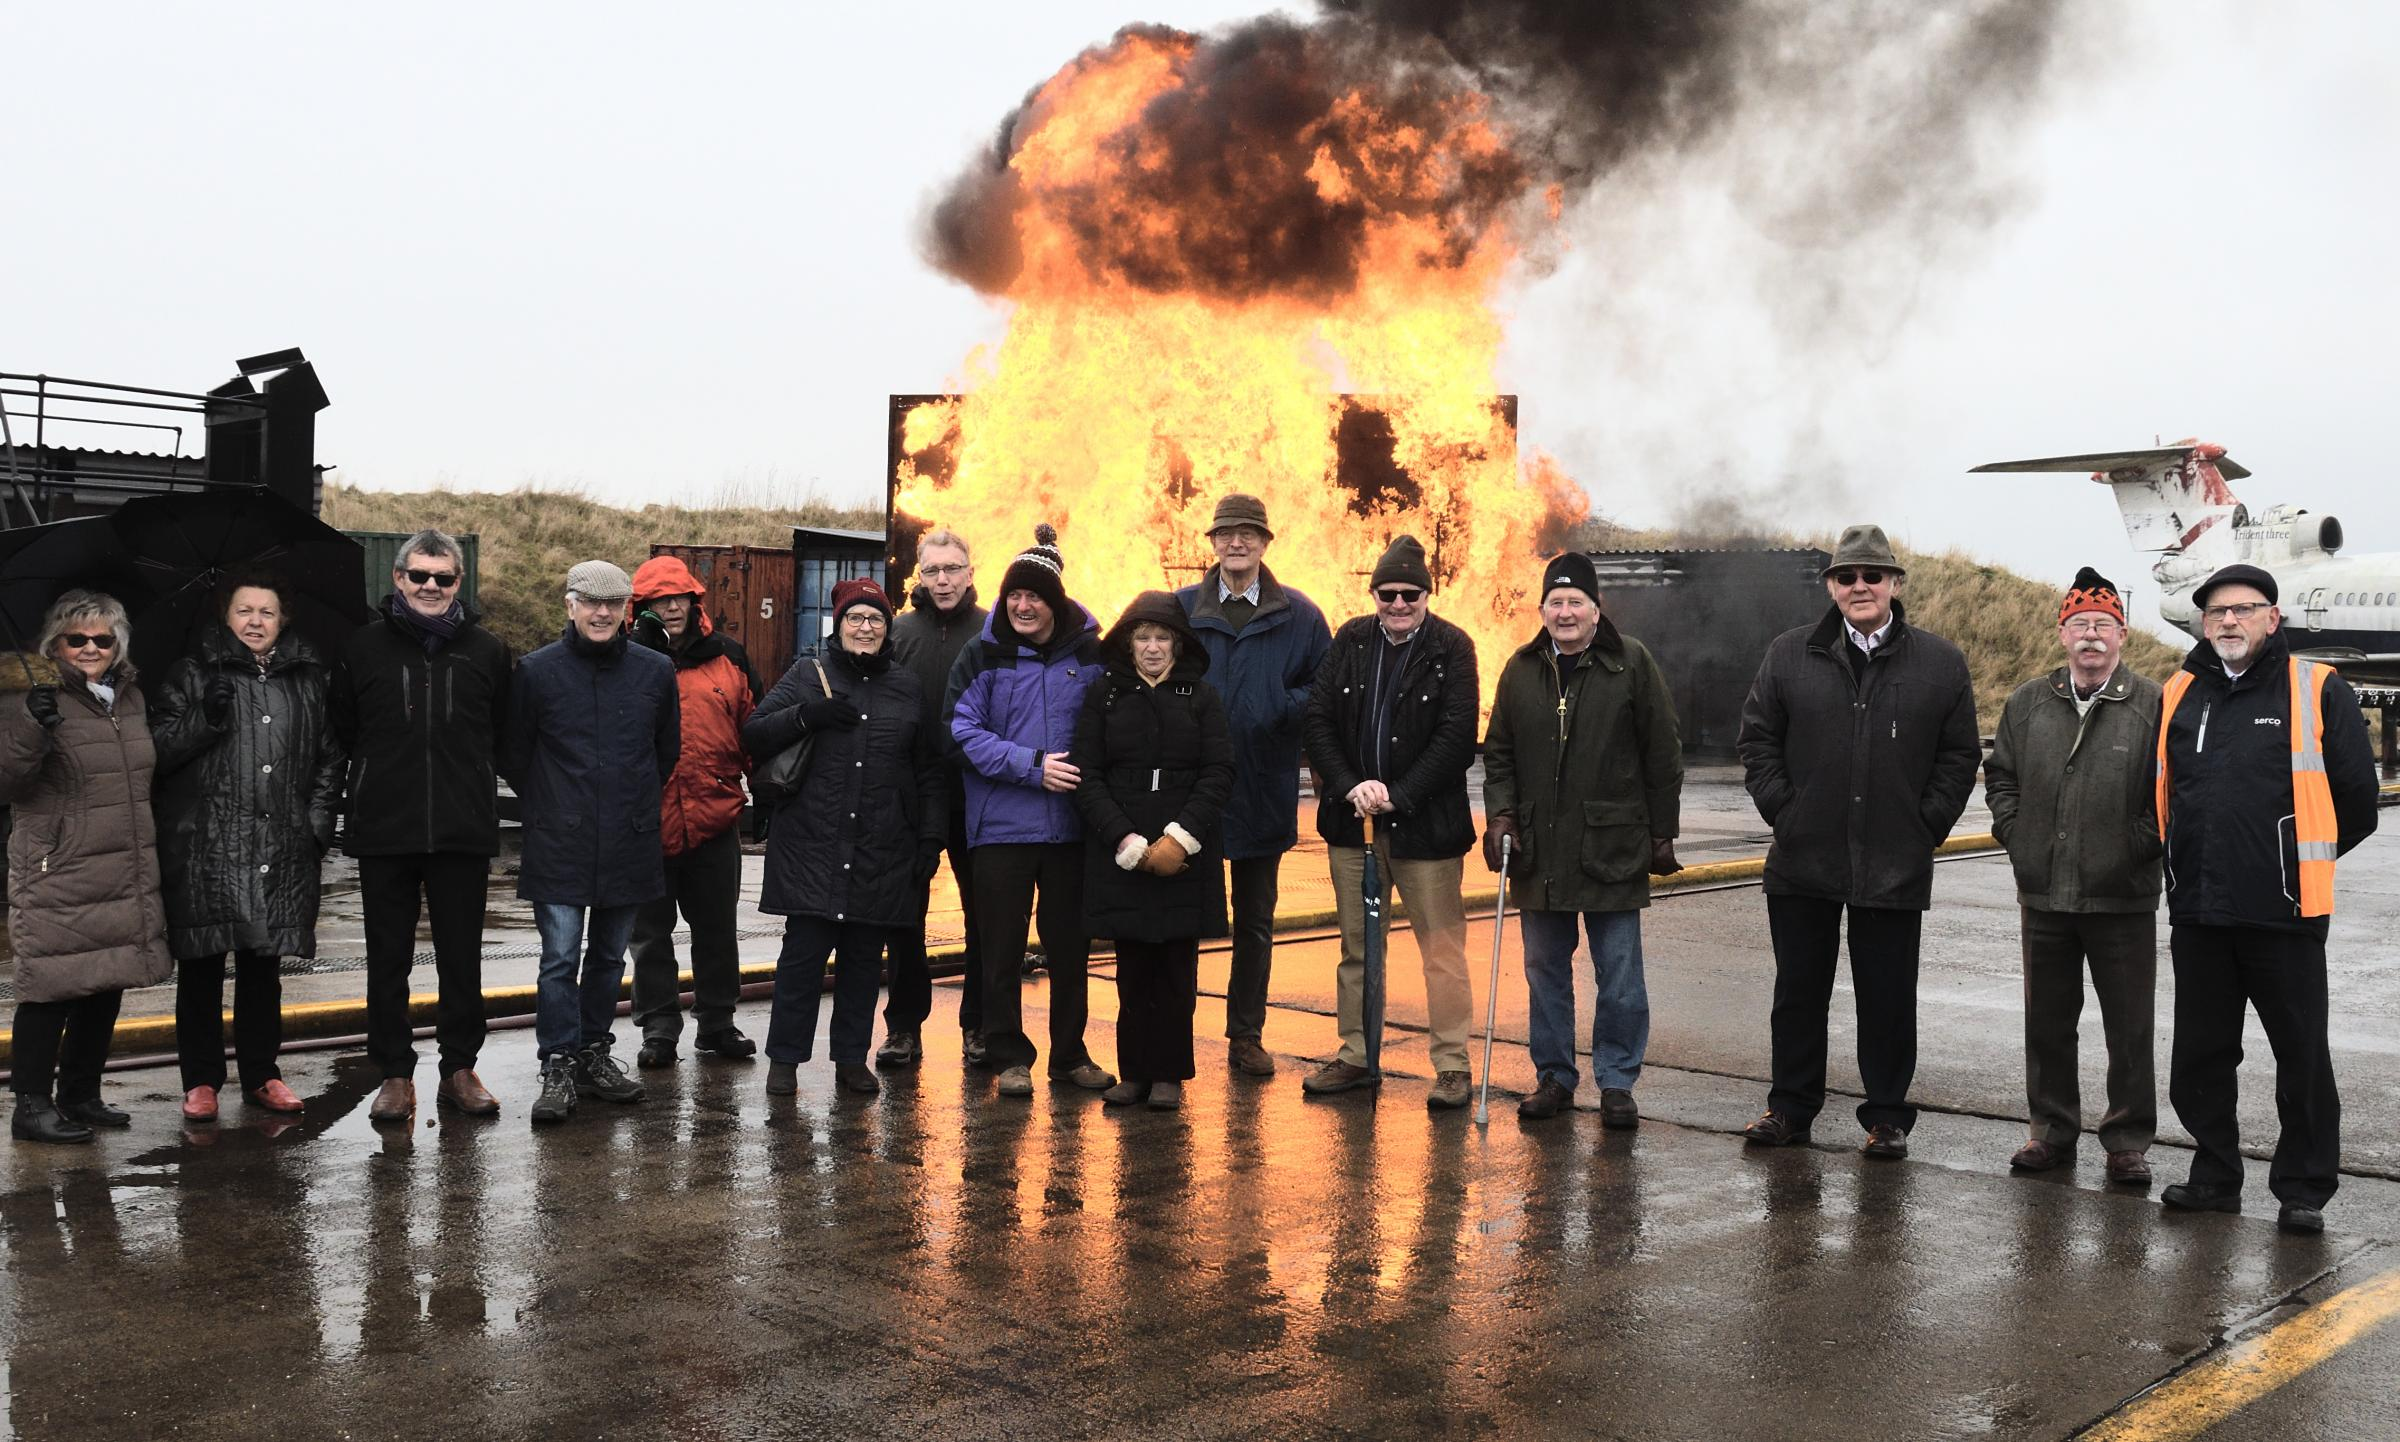 Members of Pickering Rotary Club during their recent visit to the International Fire Training Centre at Durham Tees Valley Airport